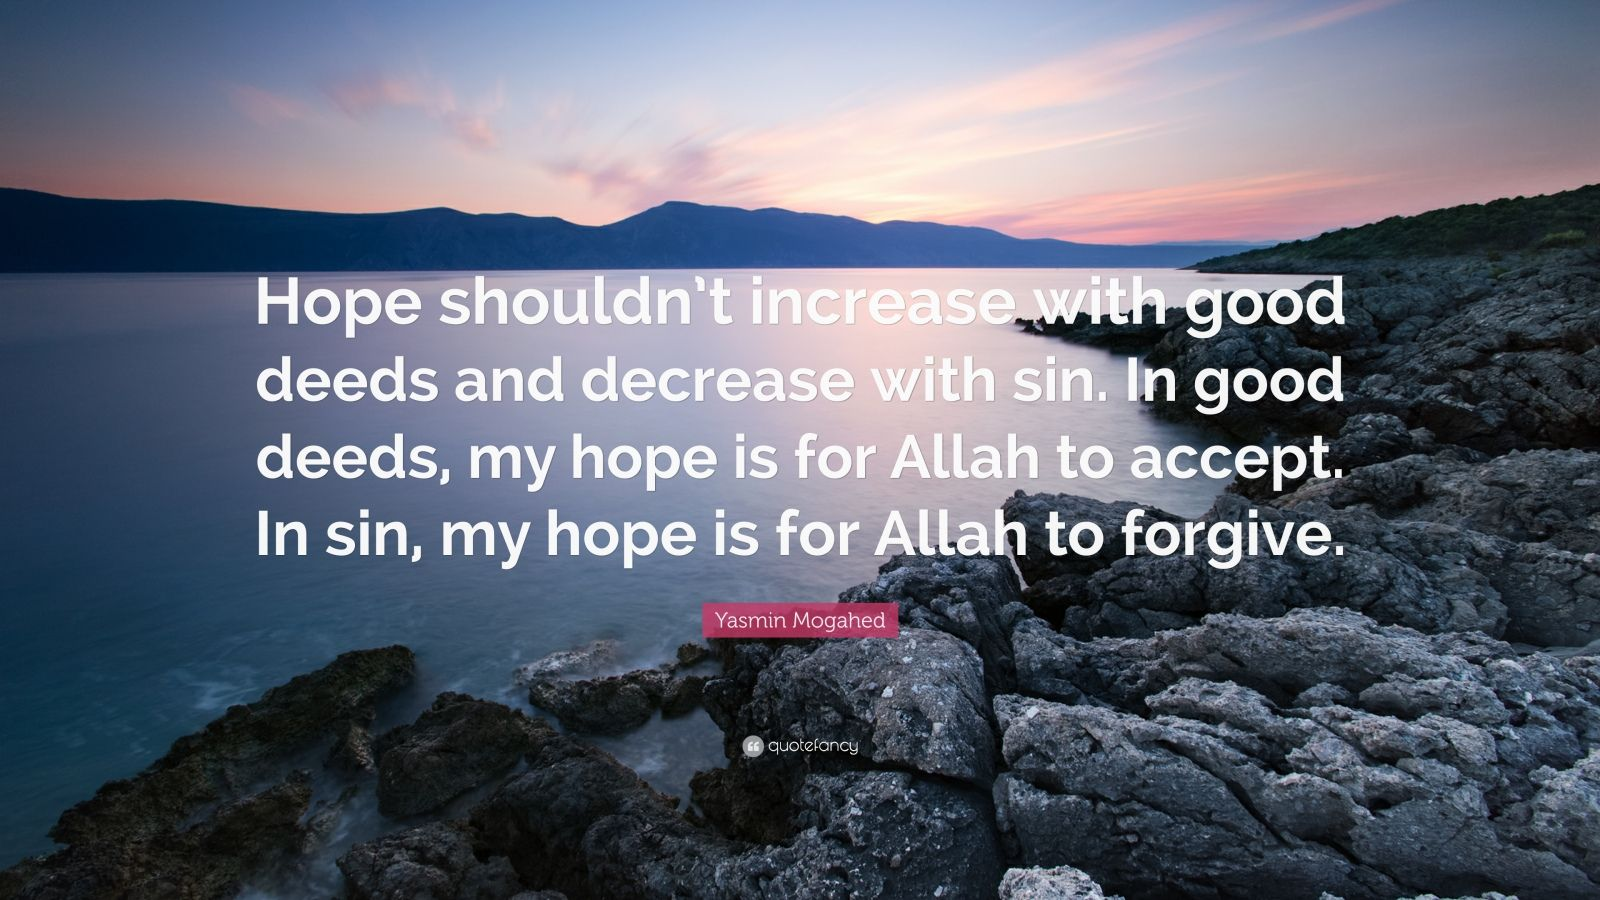 "Yasmin Mogahed Quote: ""Hope shouldn't increase with good deeds and decrease with sin. In good deeds, my hope is for Allah to accept. In sin, my hope is for Allah to forgive."""